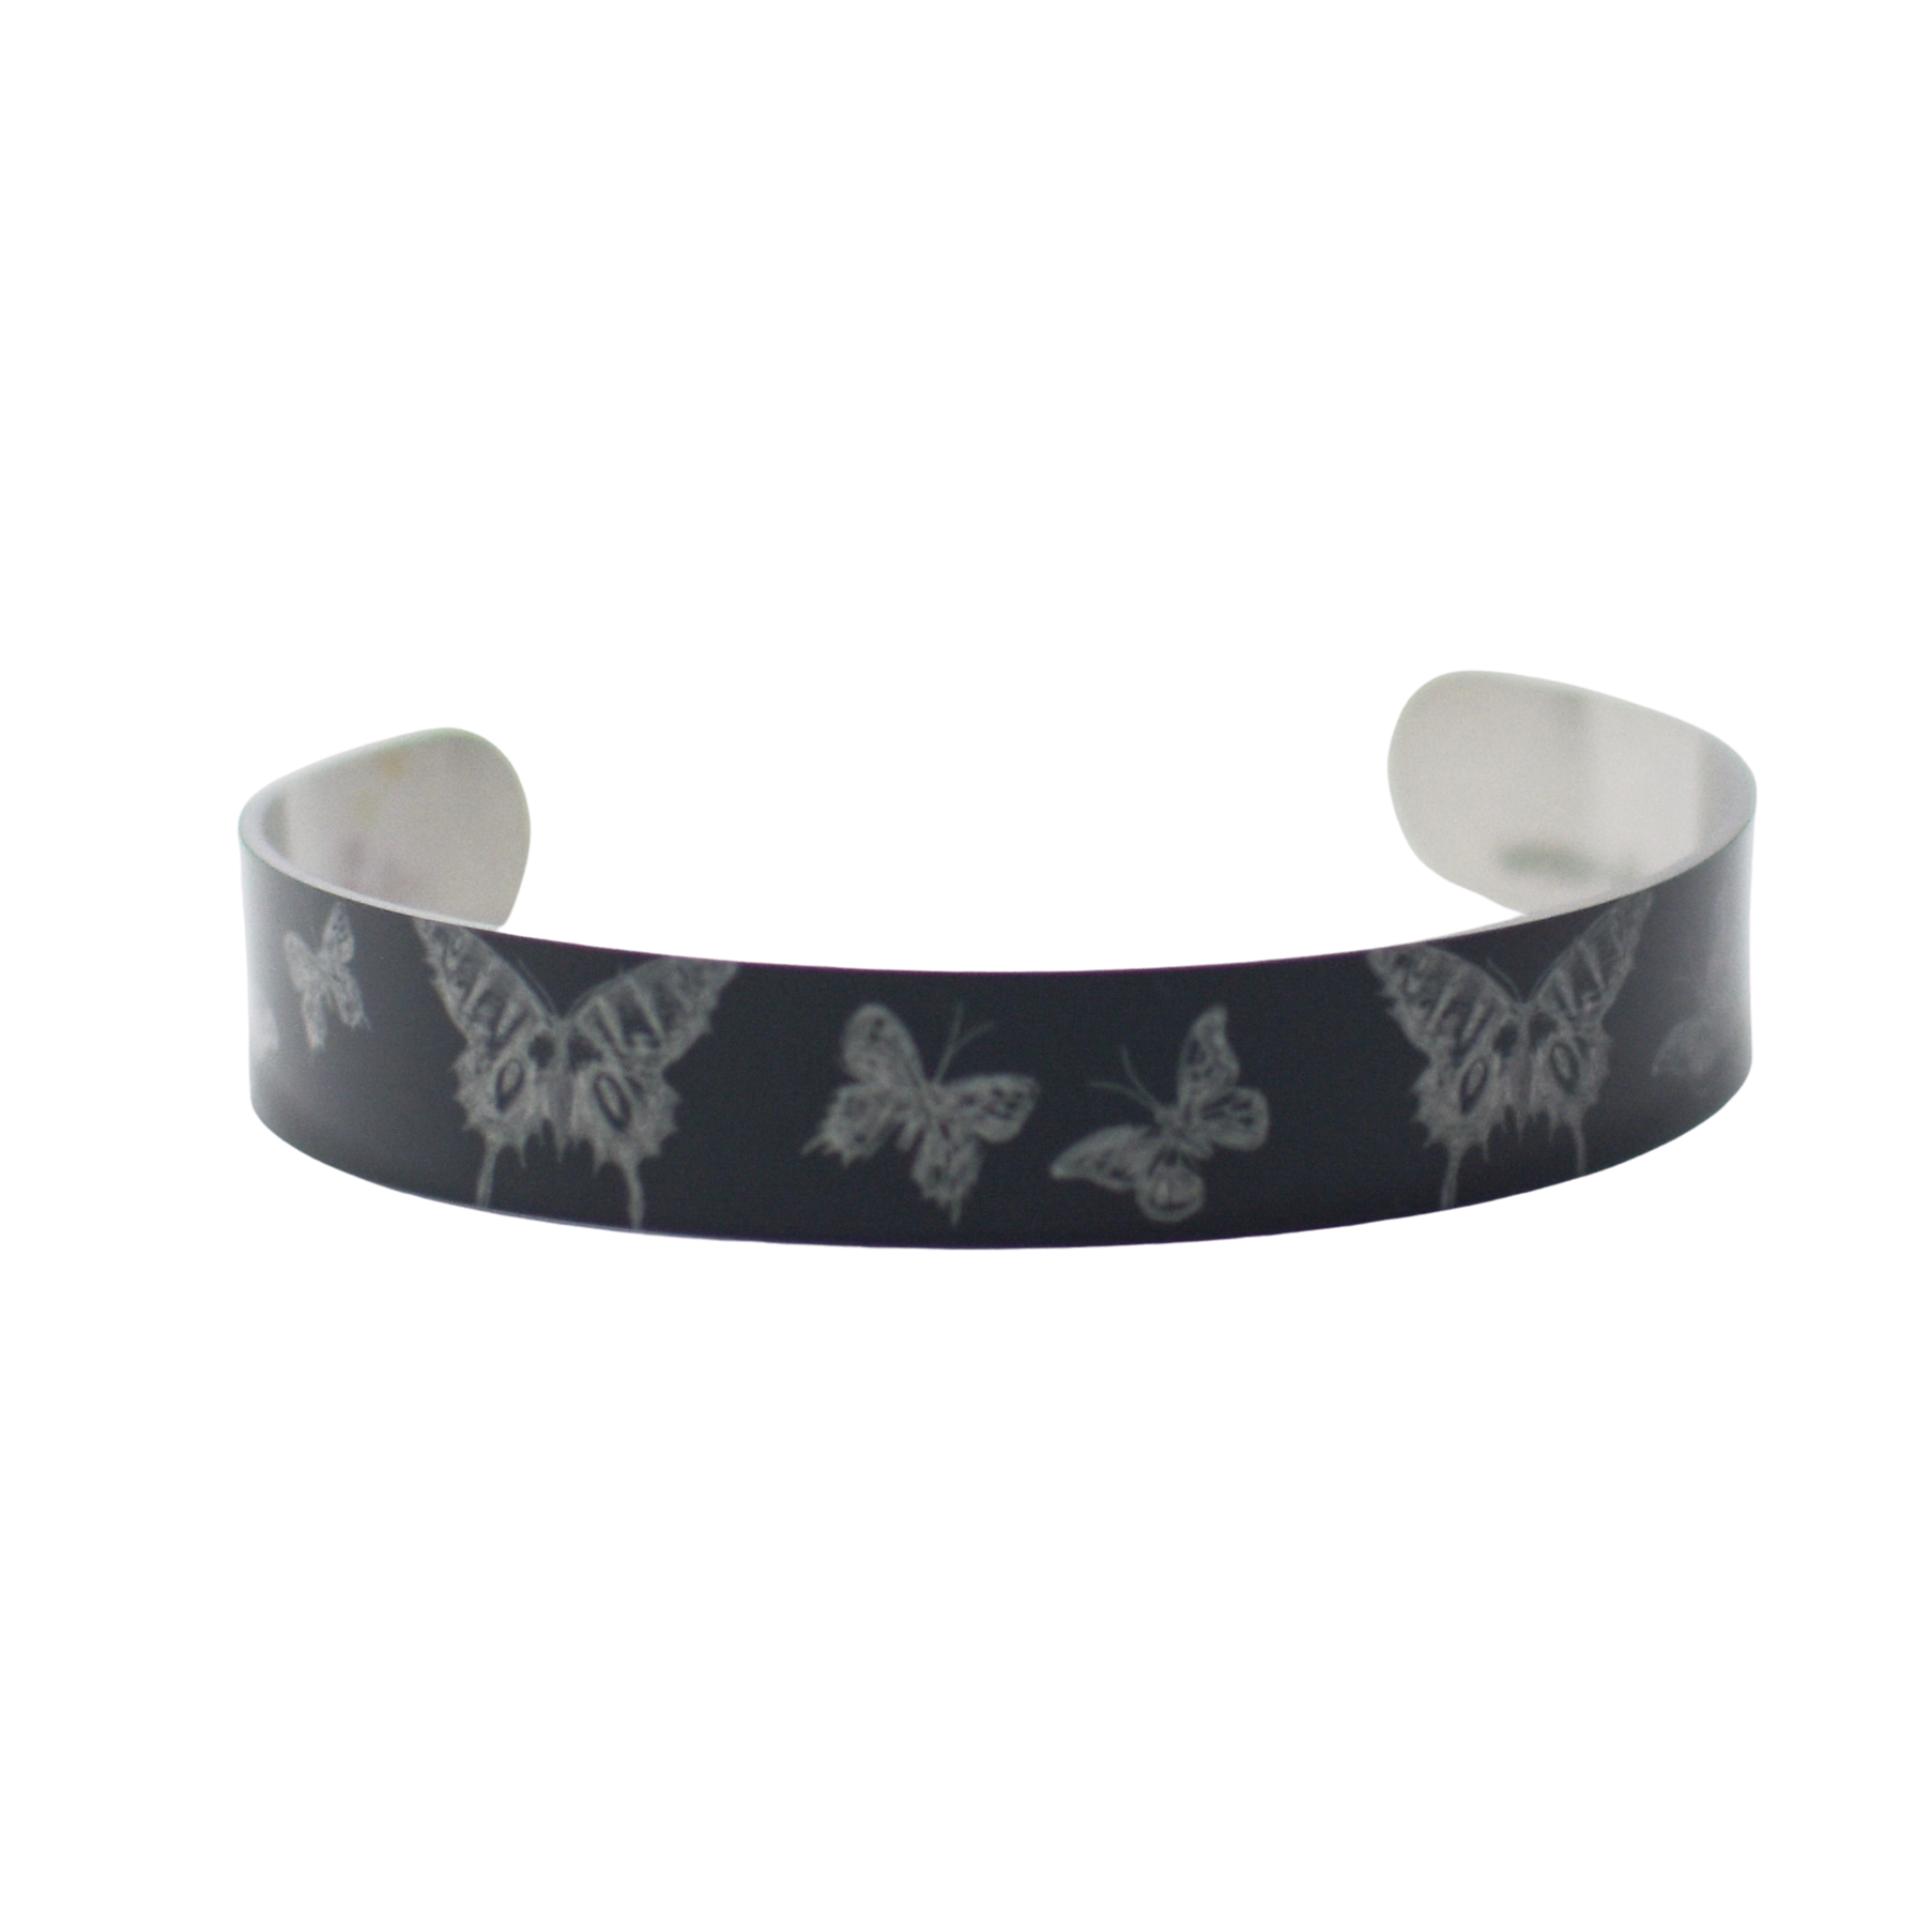 Standard view | Expressive Papillon Butterfly Cuff Bracelet | Wear the Wonder